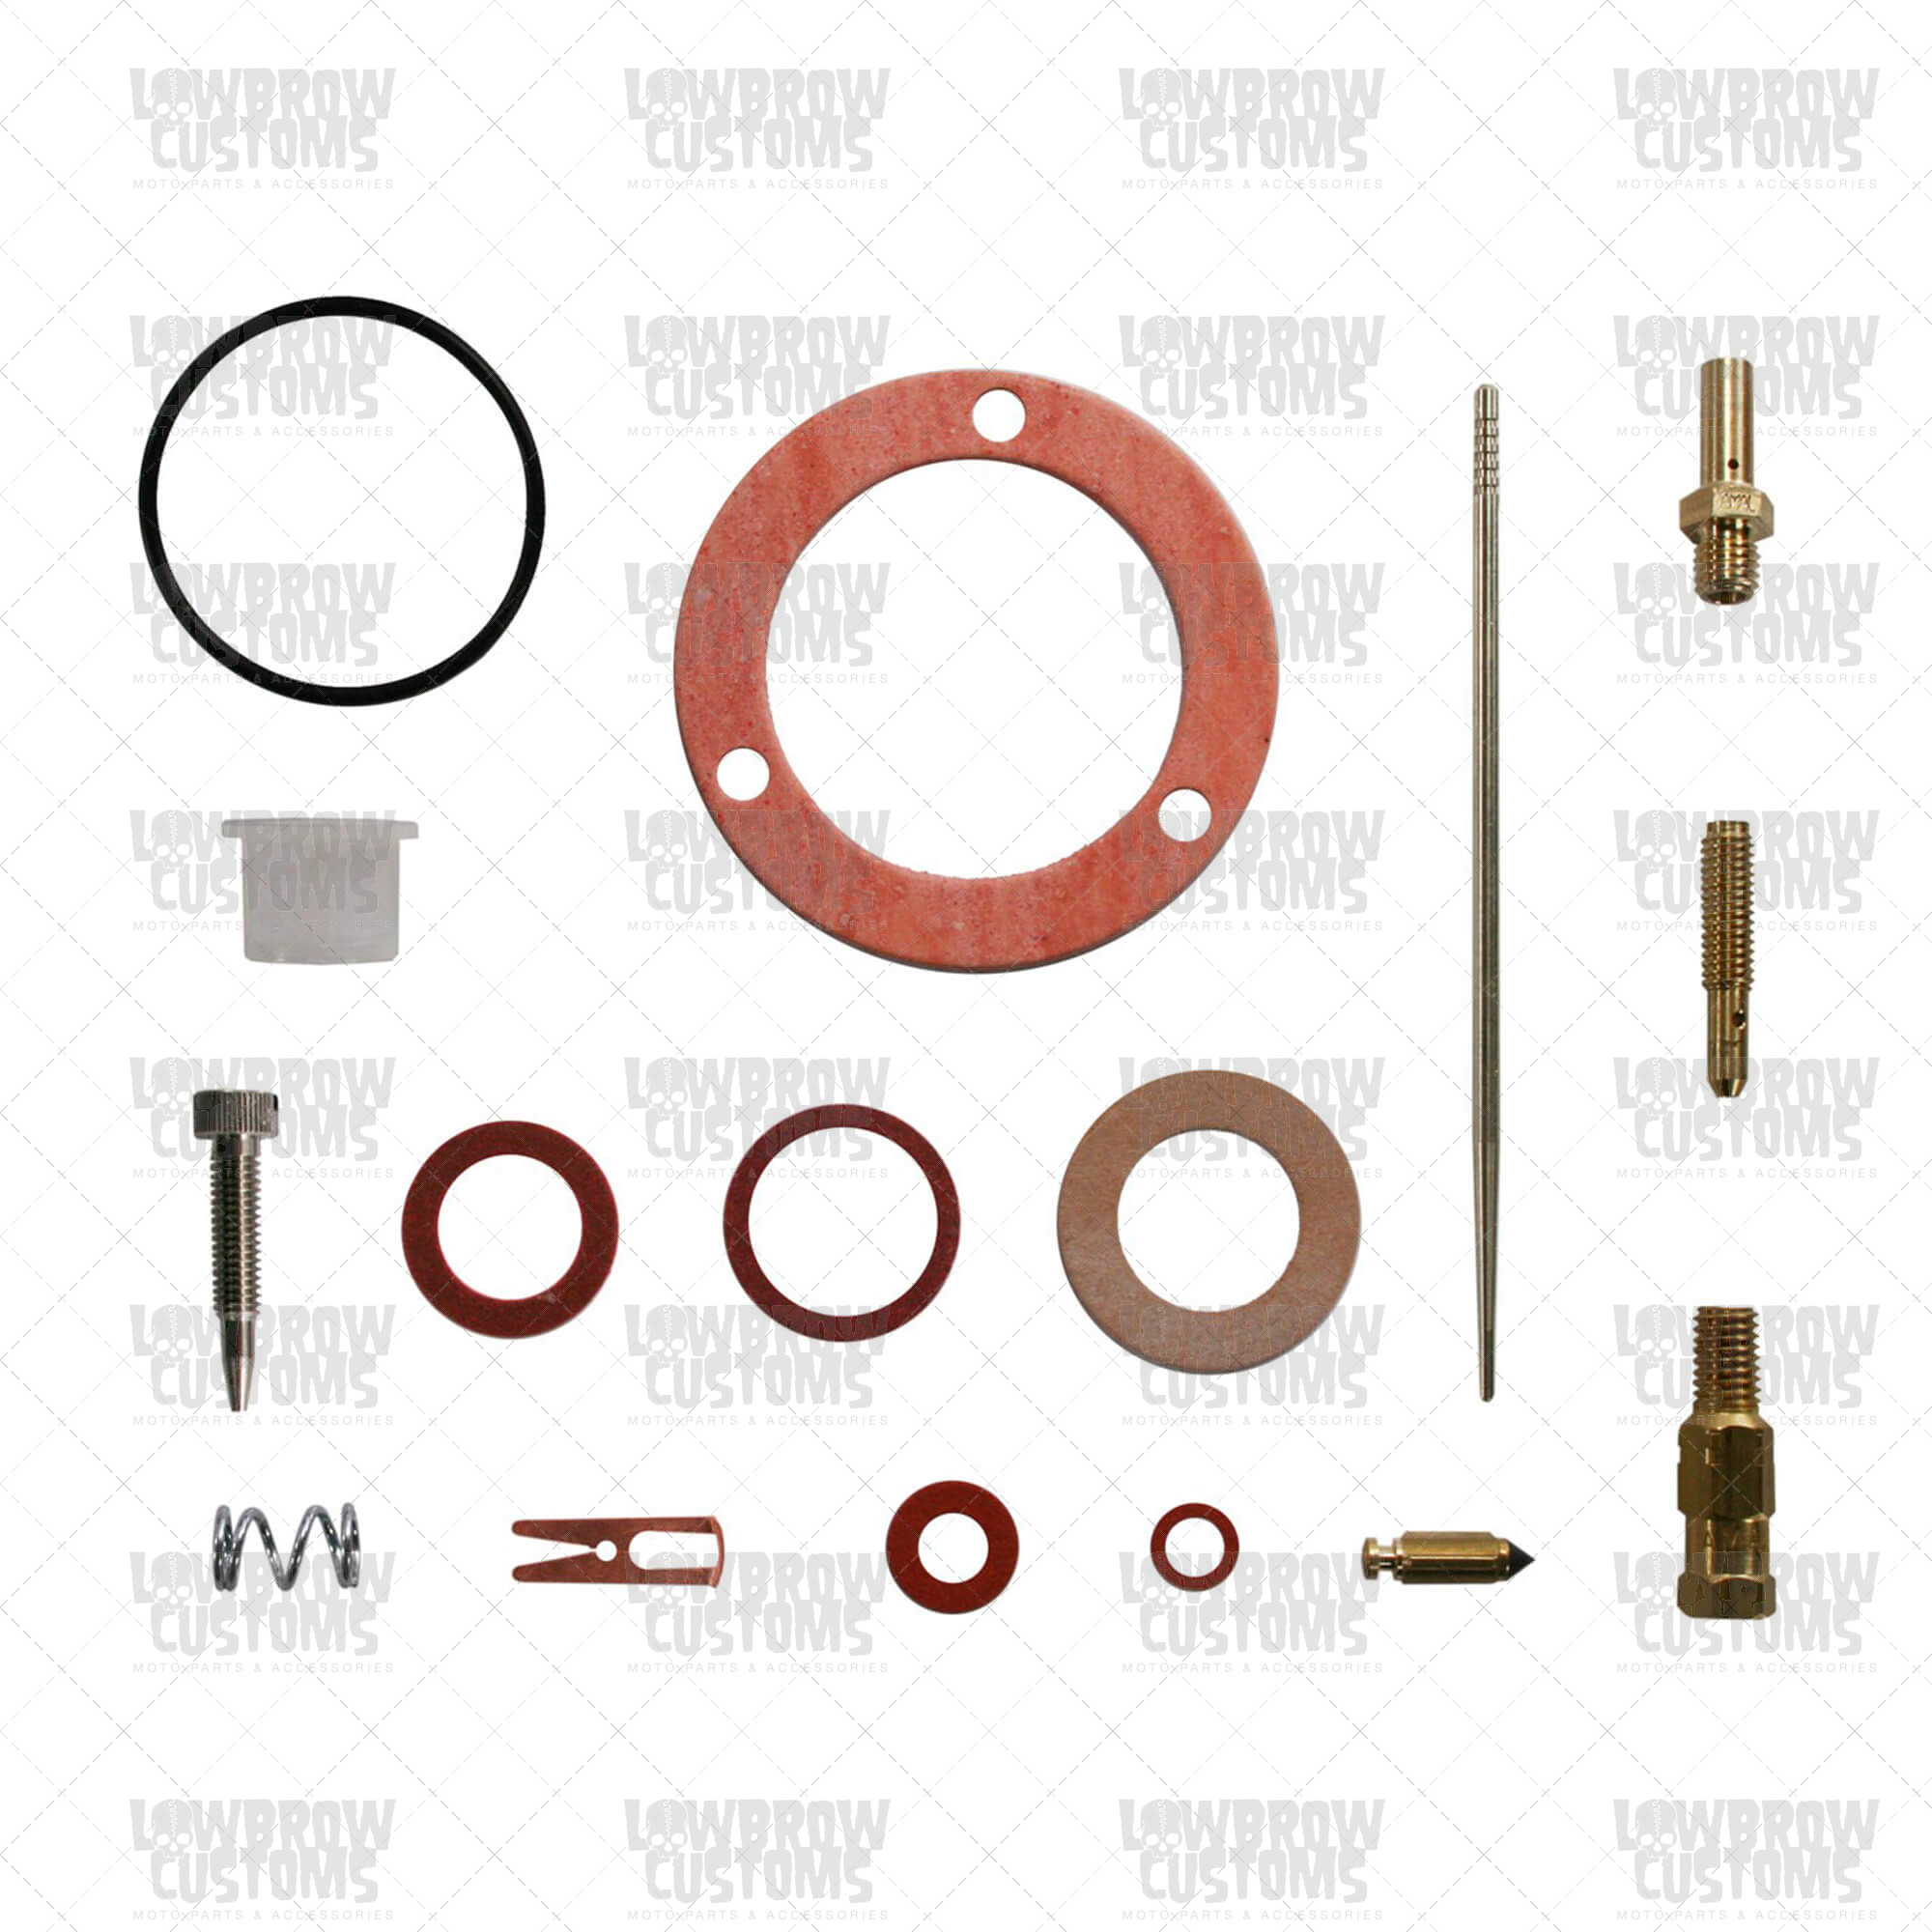 Amal Carburetor Rebuild Kit for 389 Monobloc Carb.